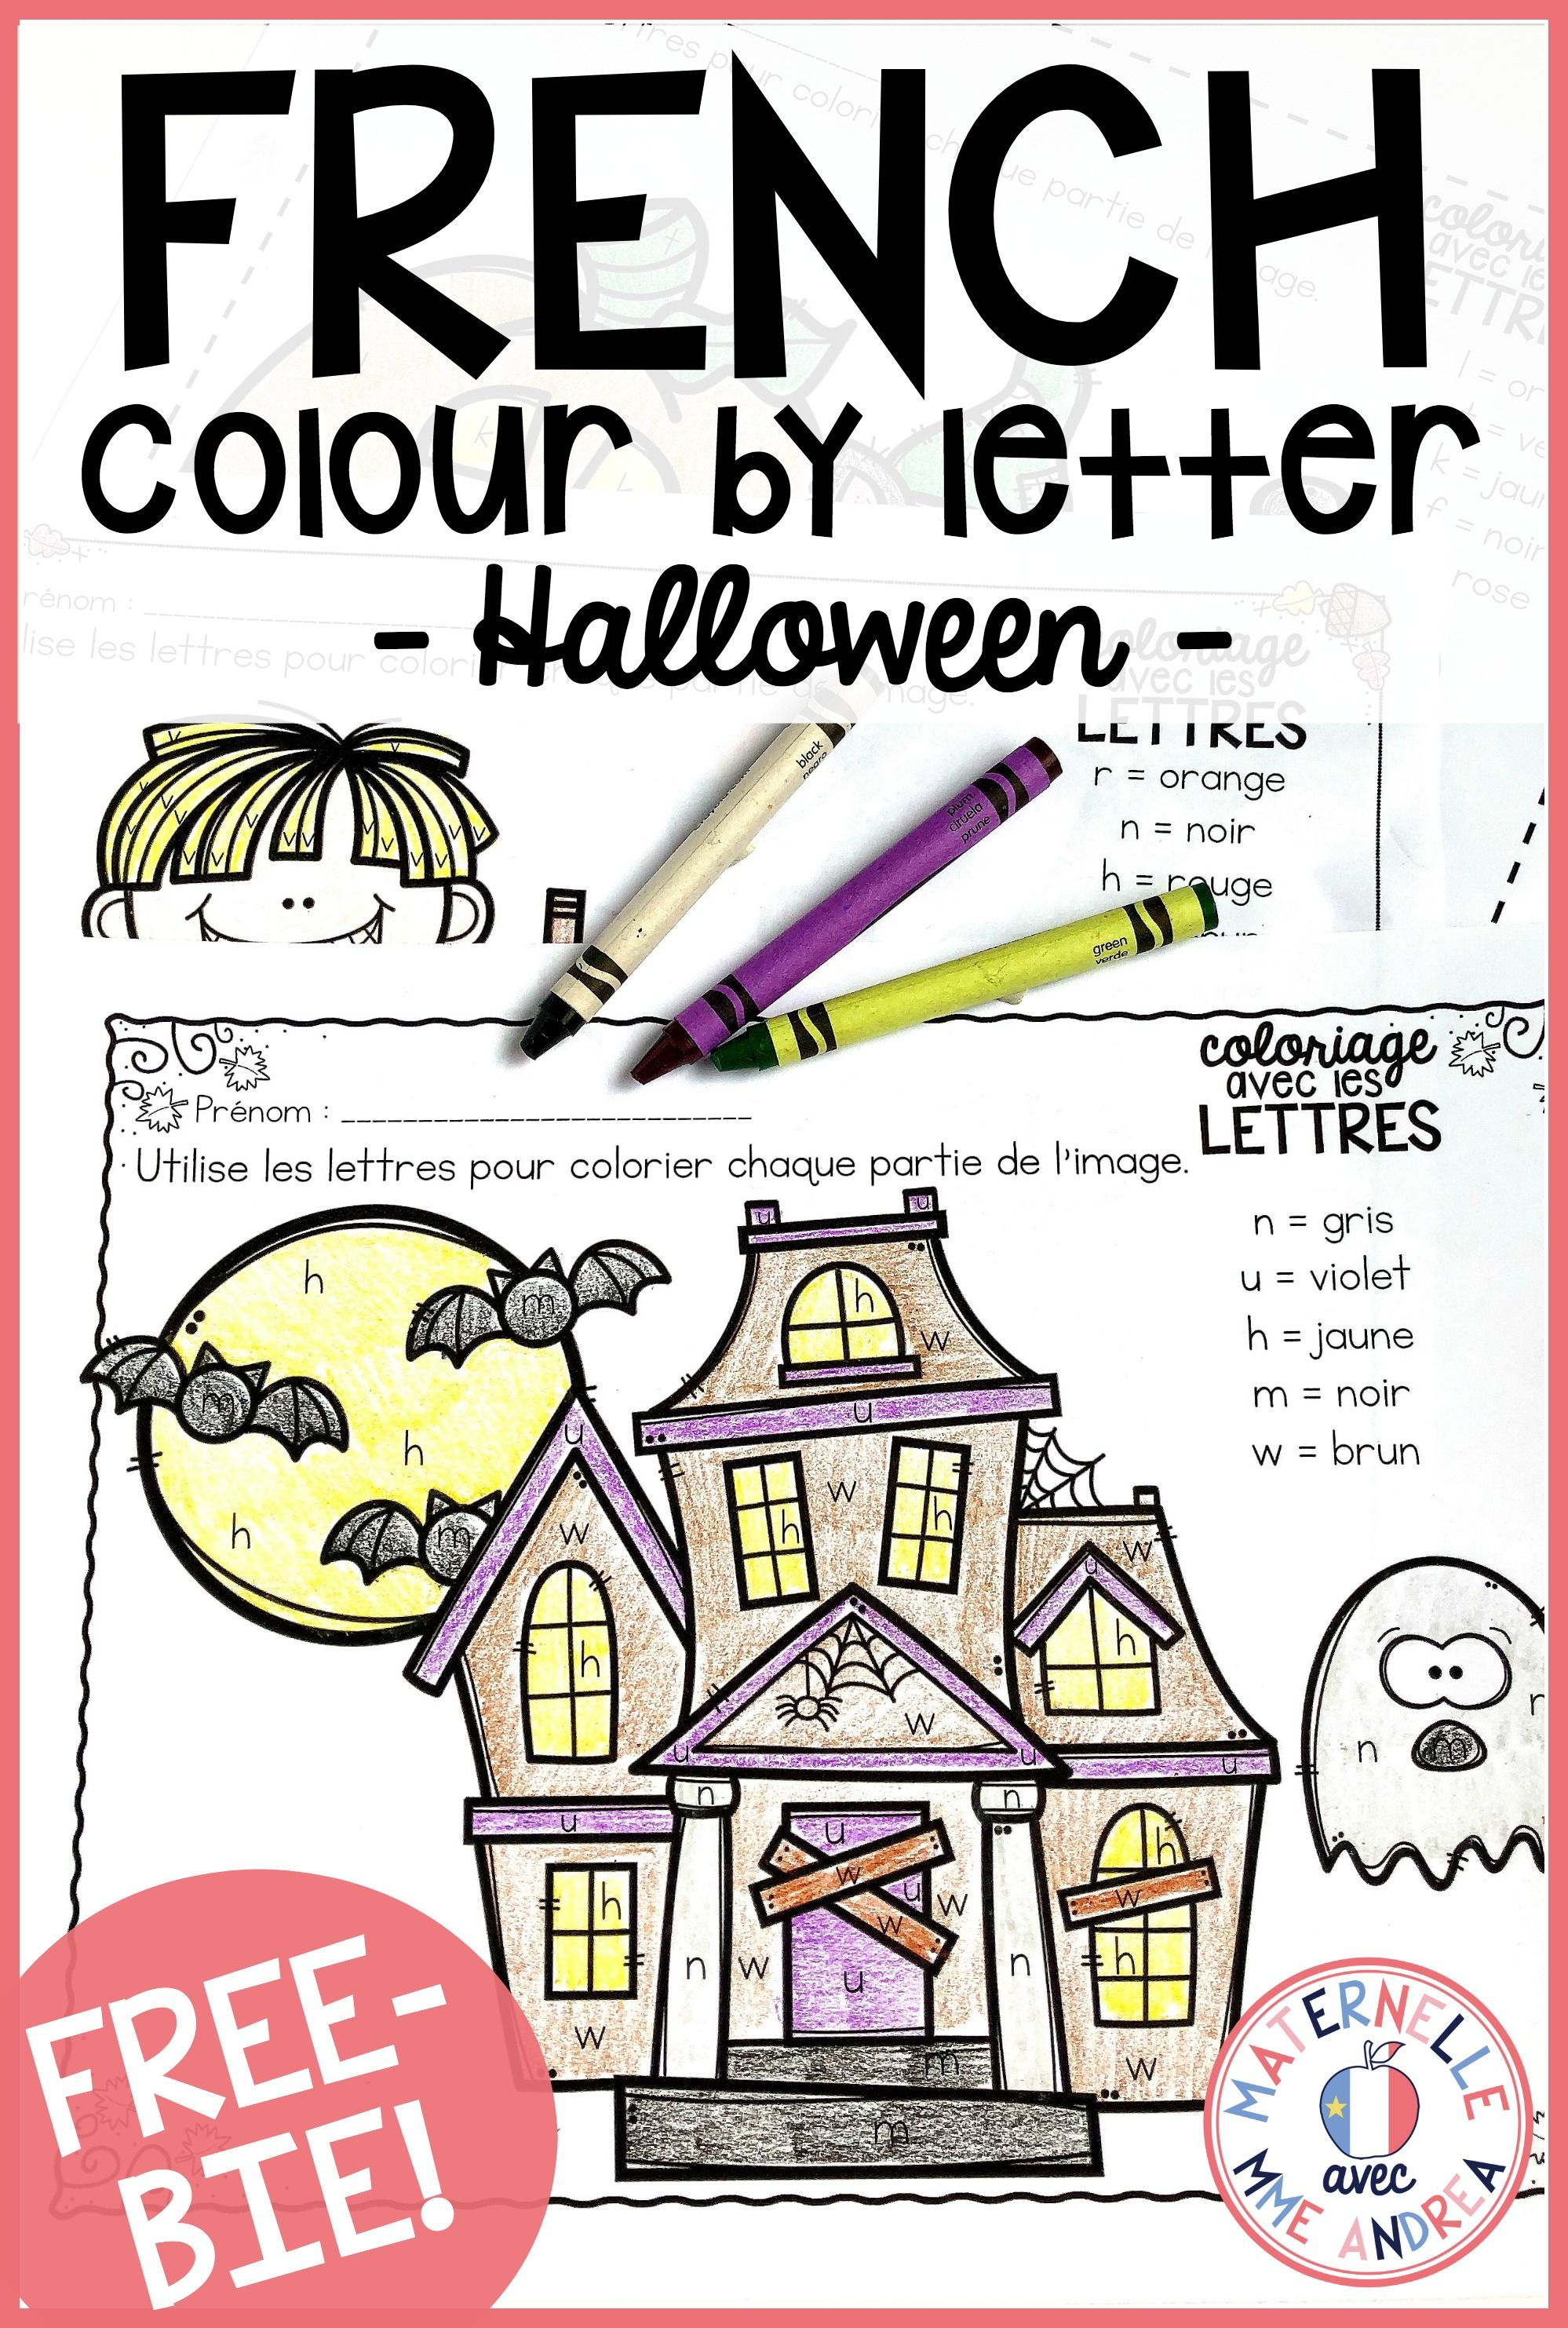 Gratuit! Free French Fall/halloween Colourletter Sheets   France - Free Printable French Halloween Worksheets